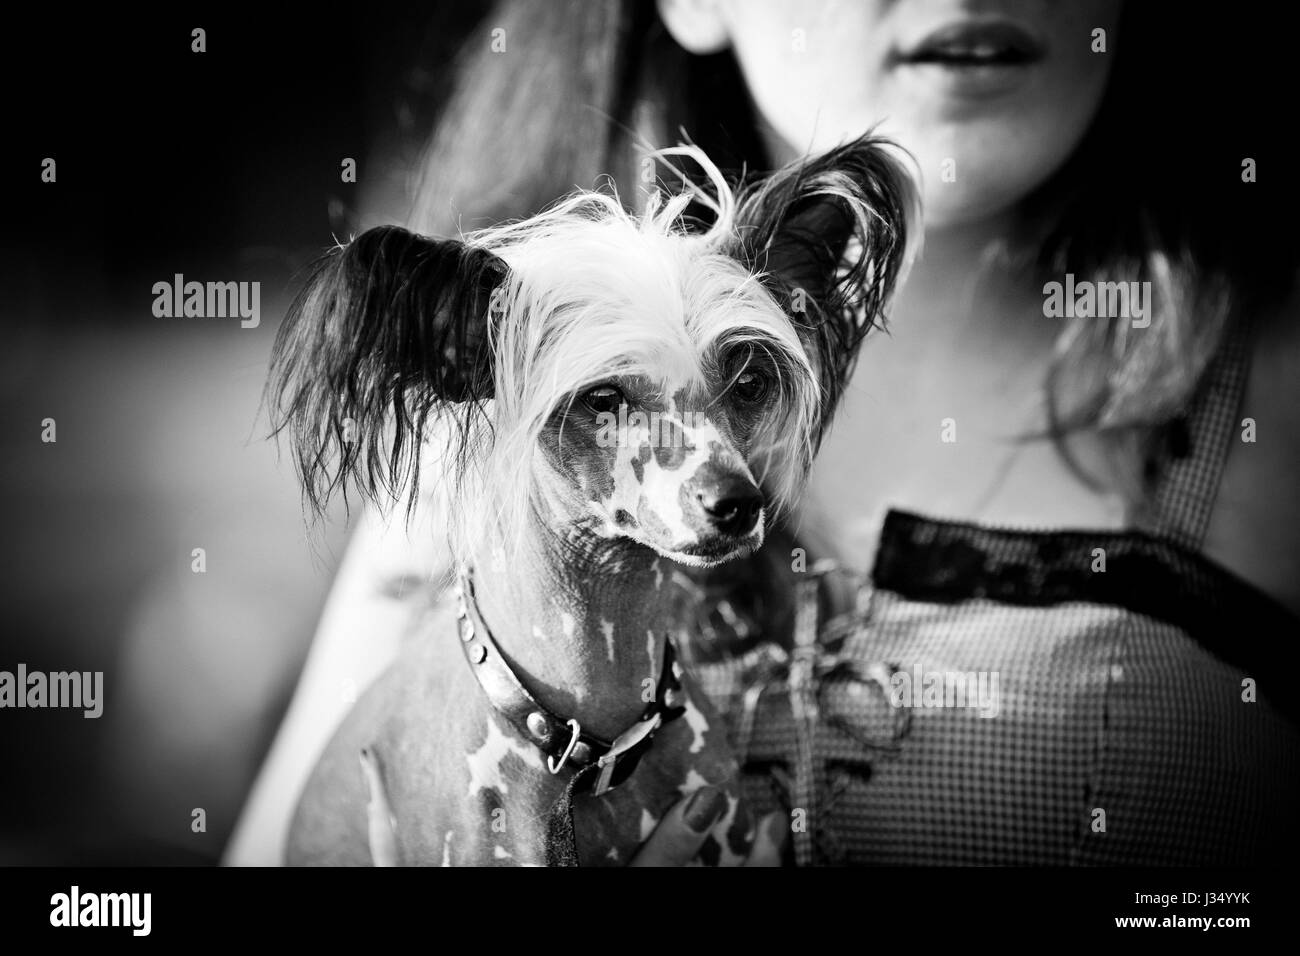 Chinese crested dog walking outdoors with owner. Monochrome. Grain added. - Stock Image